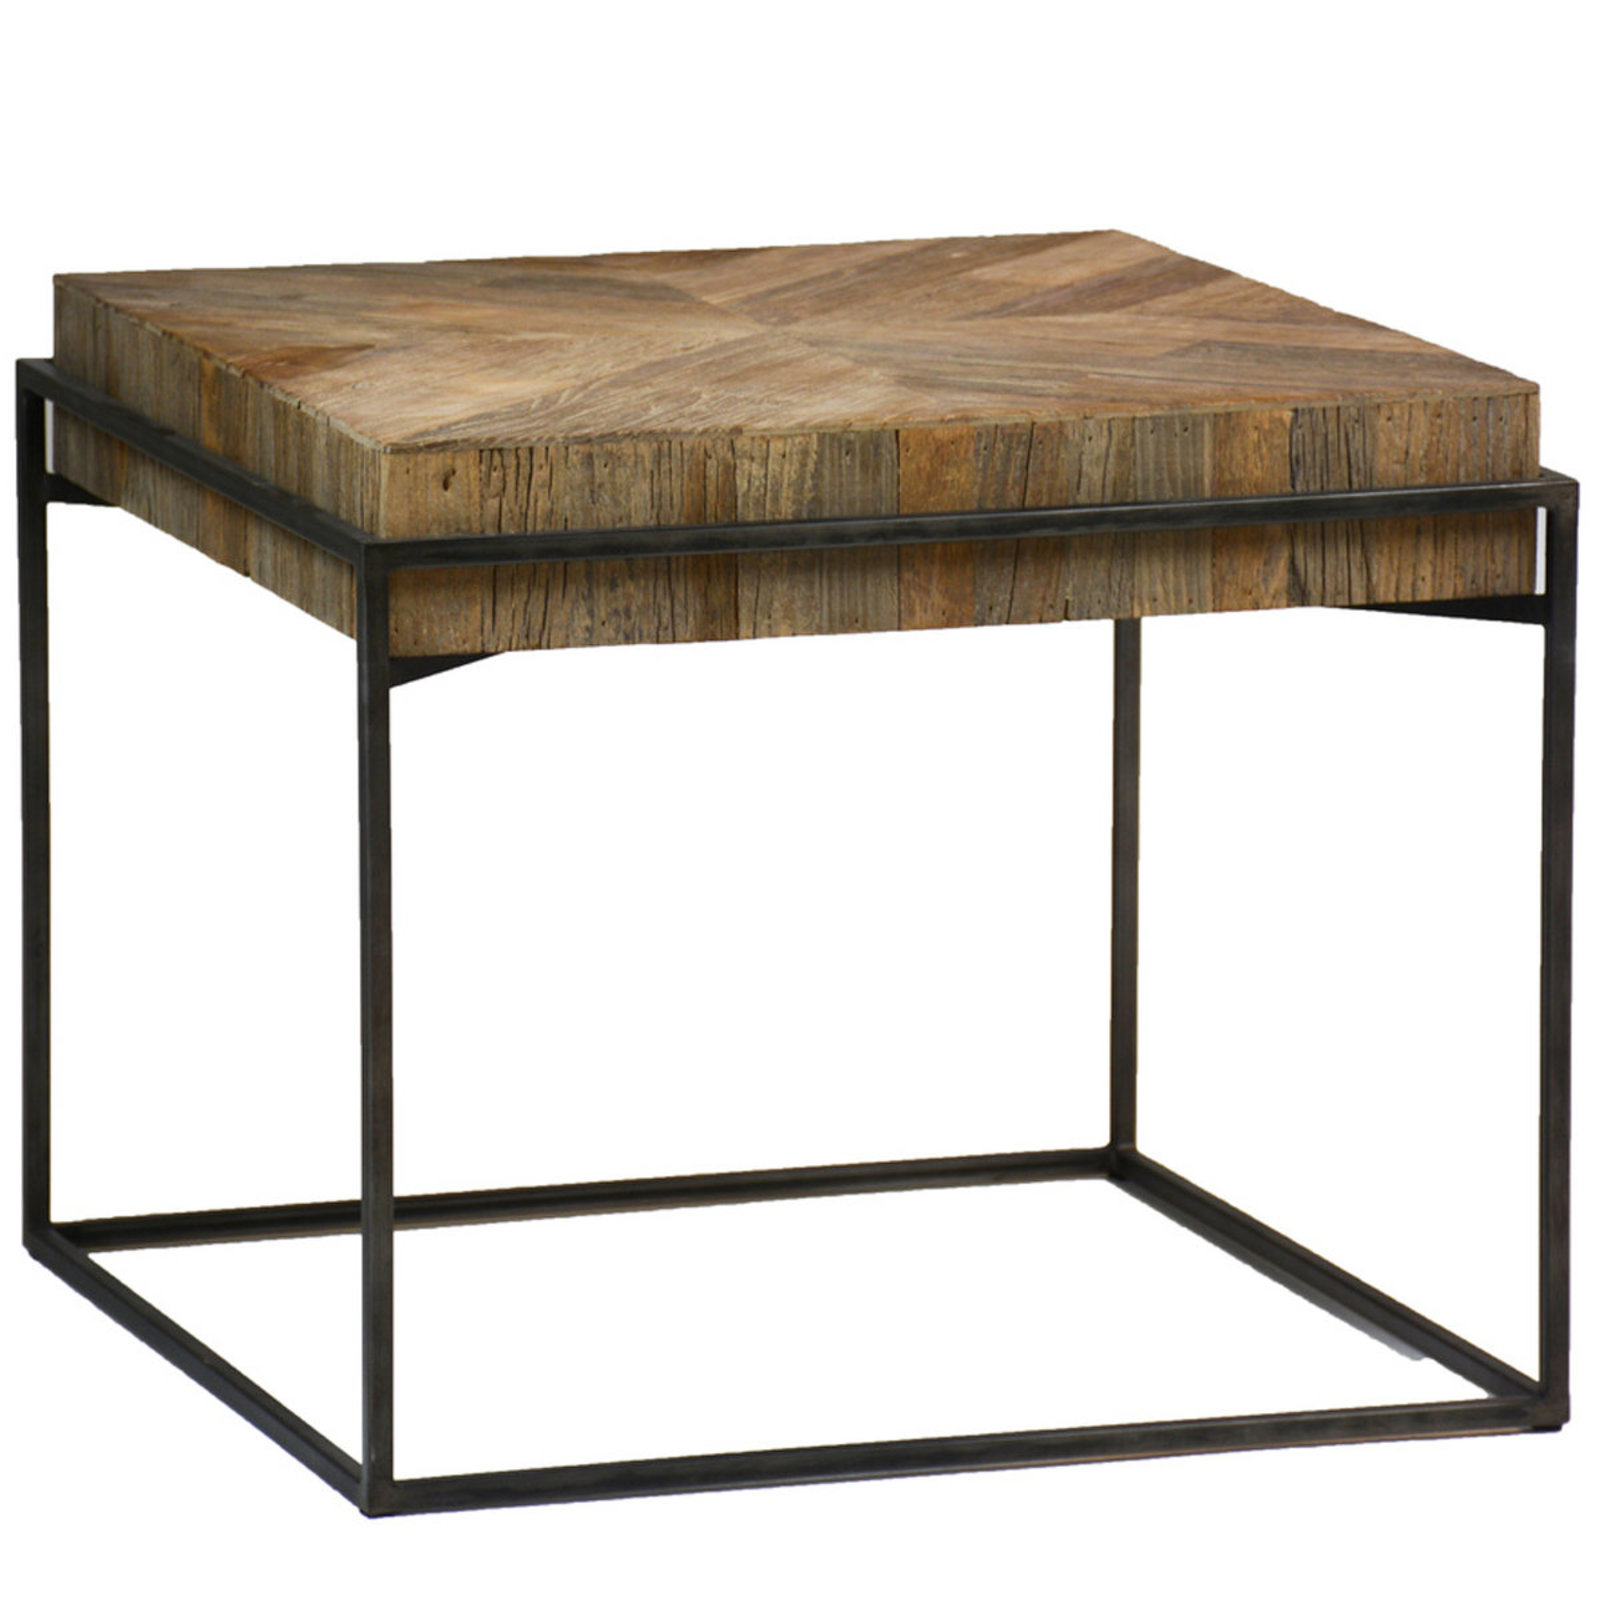 open frame butcher block accent table shades light wood natural black sofa with drawers blue and white porcelain lamps tall glass coffee home hardware furniture outdoor umbrella